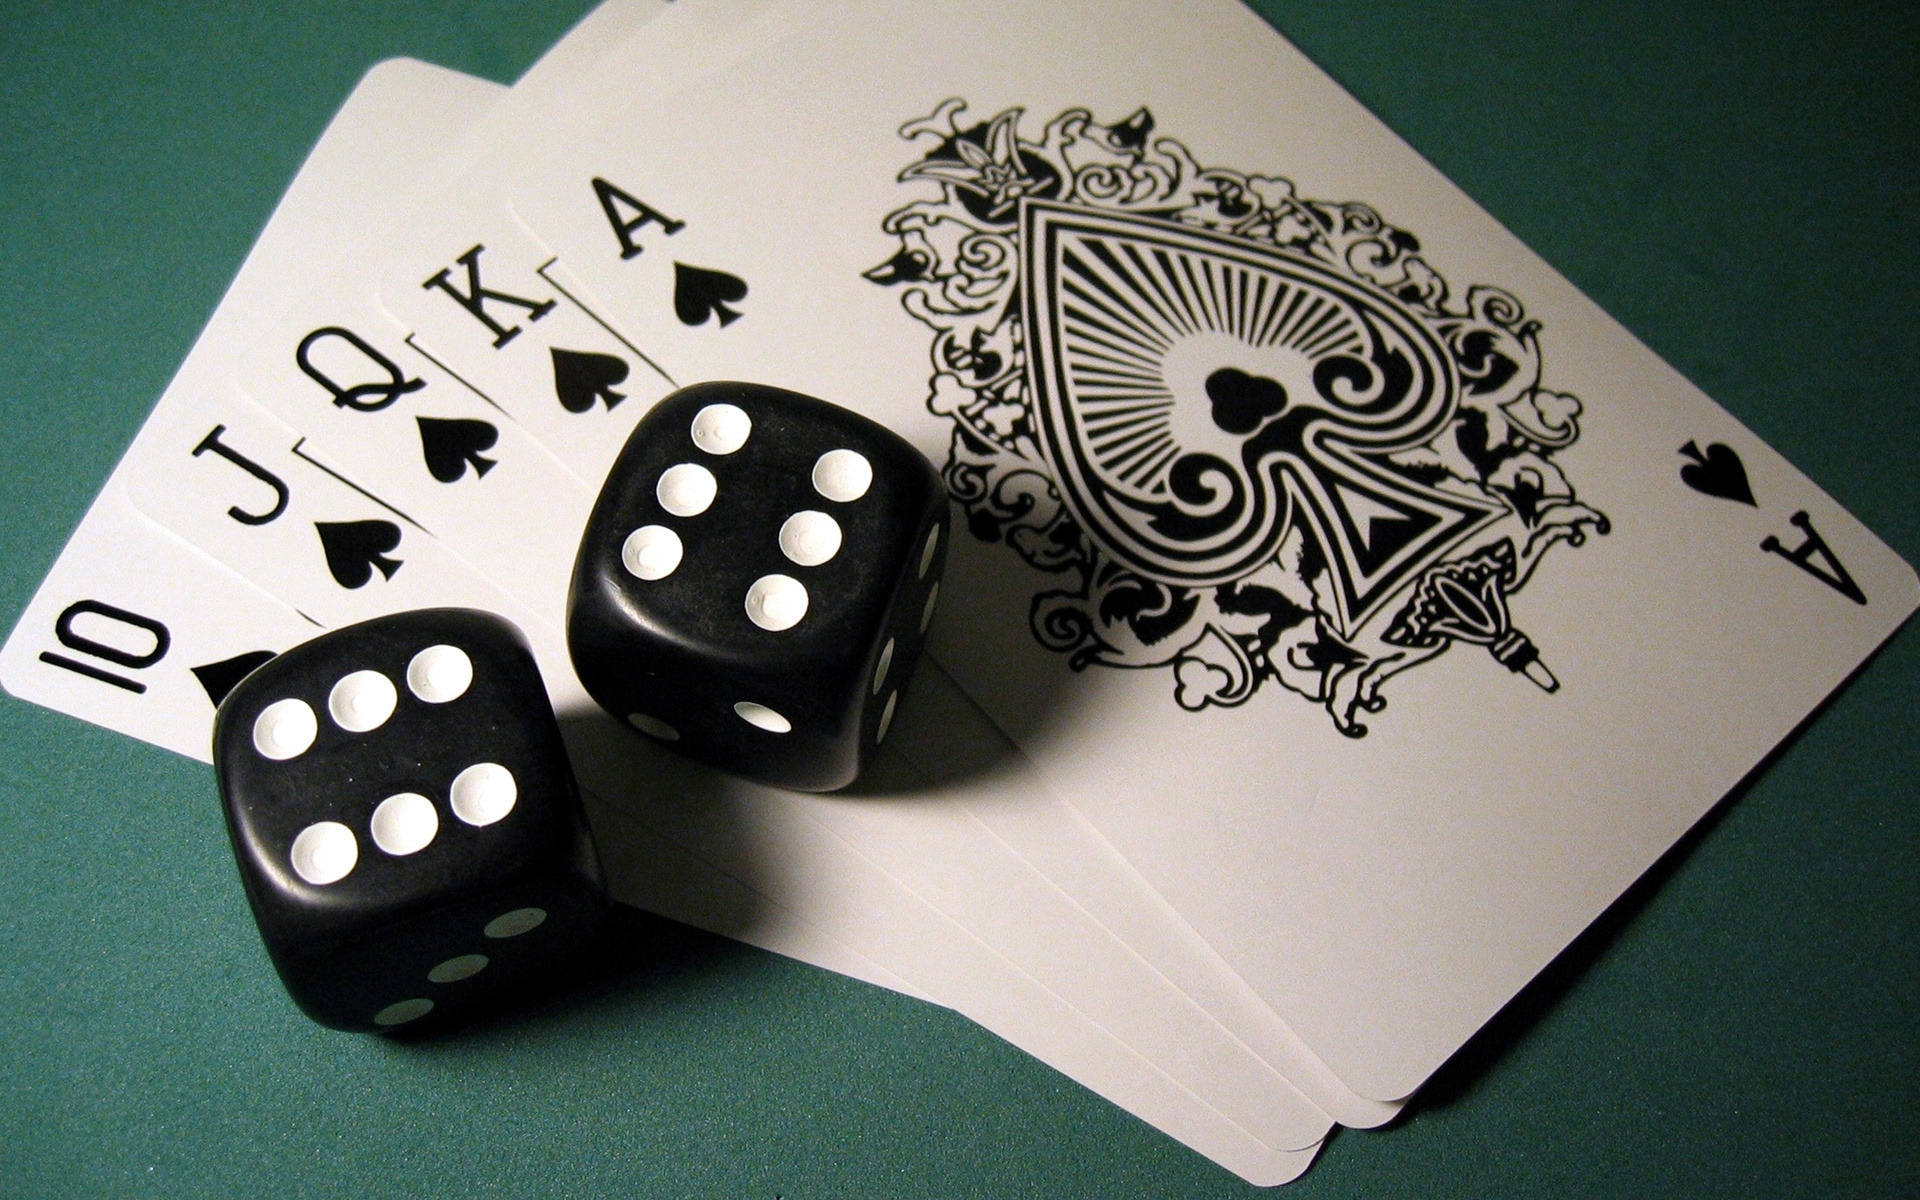 Is Online Gambling Legal In The U.S.?